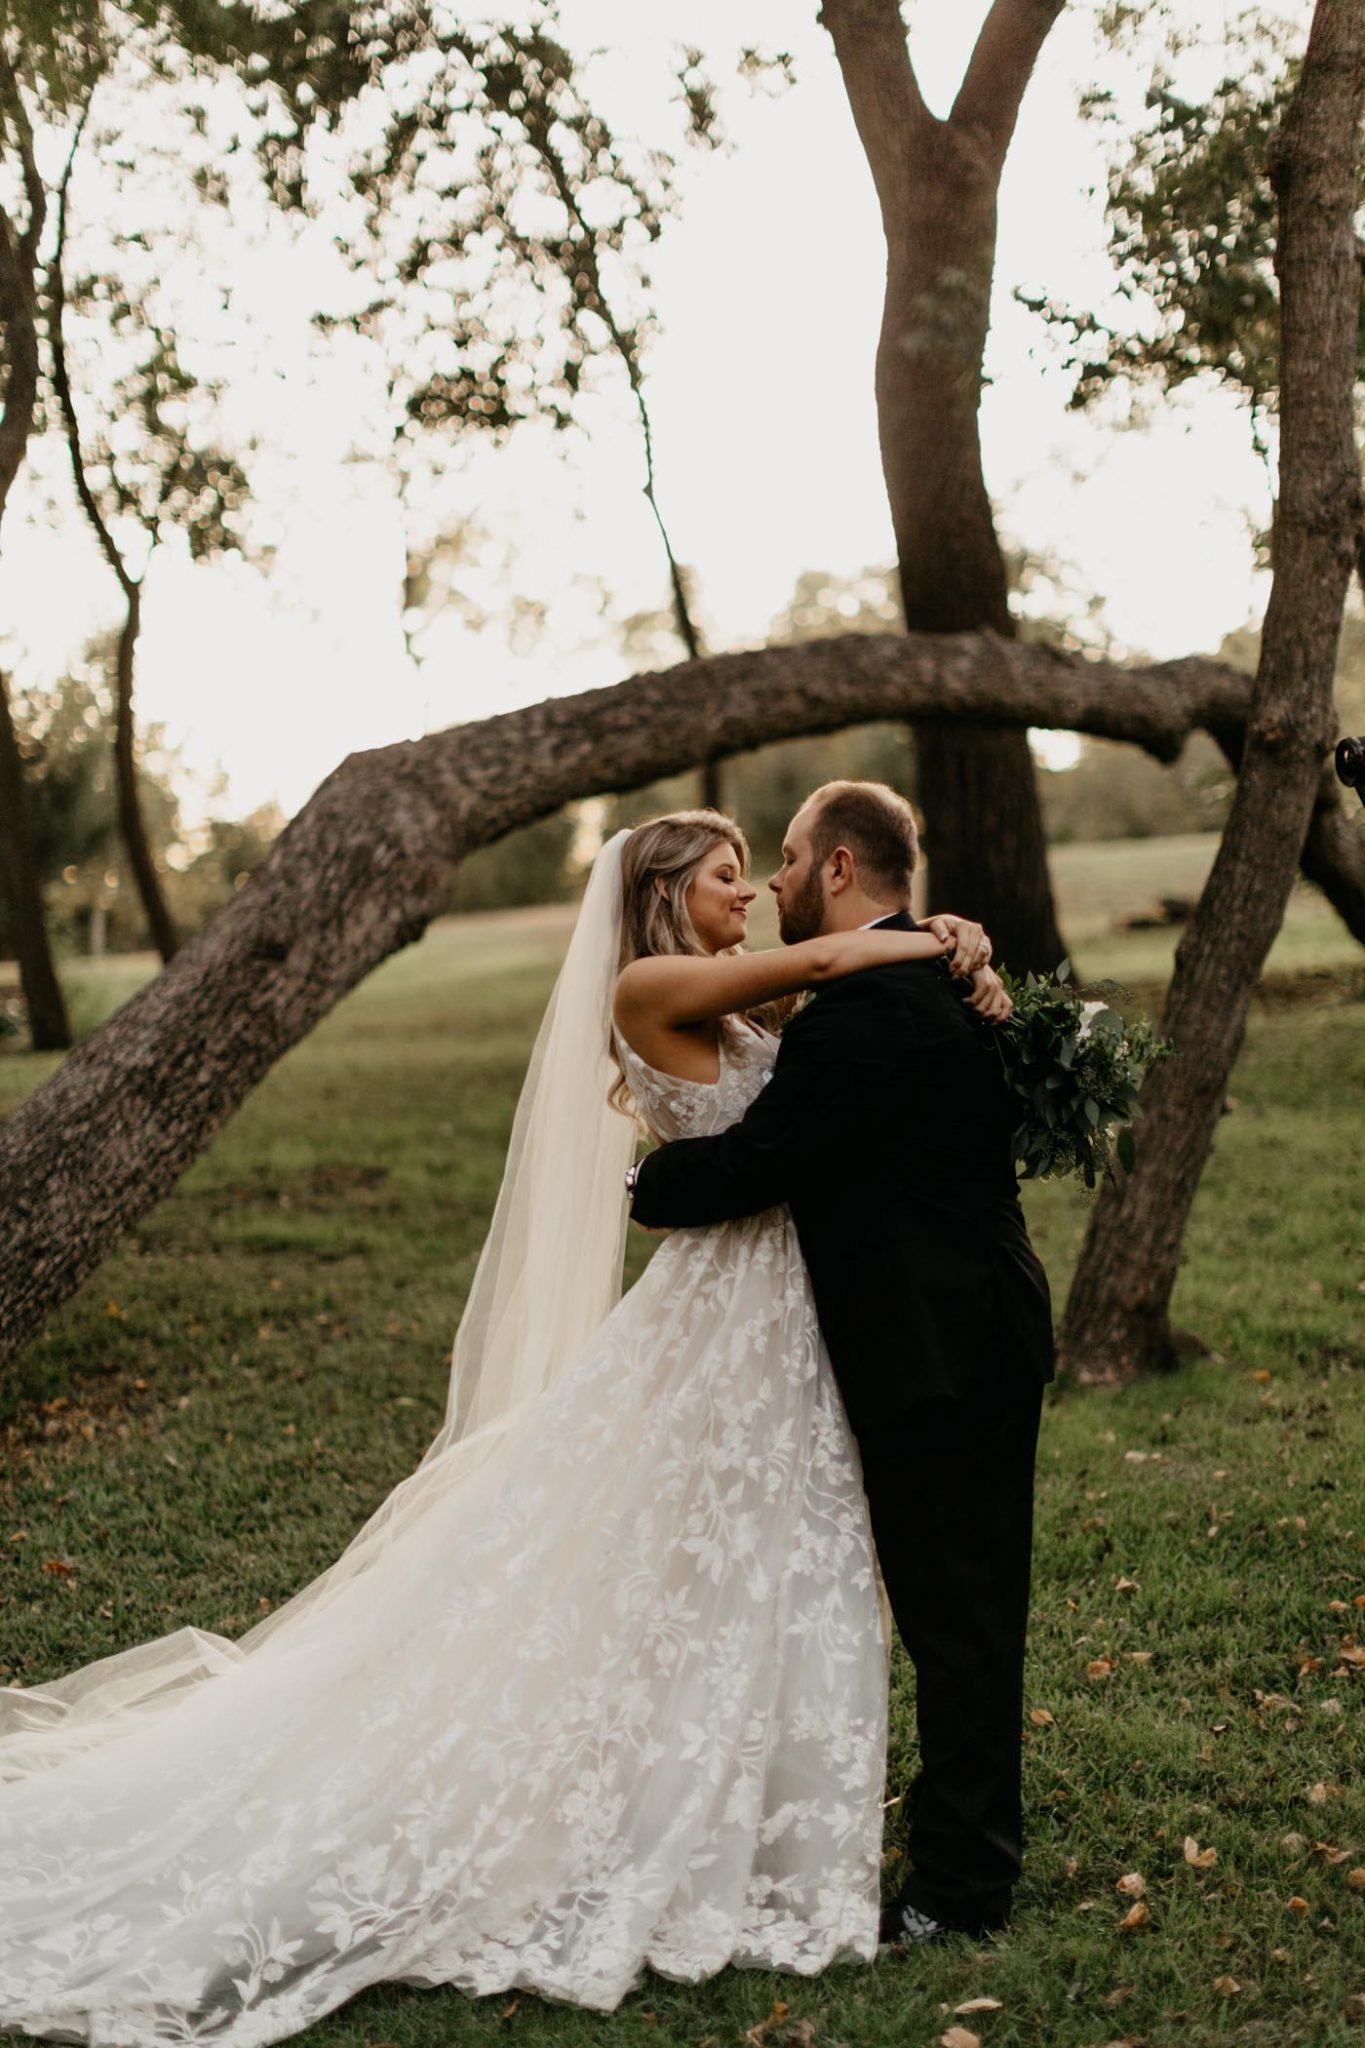 perfect bride and groom photo in the middle of a forest